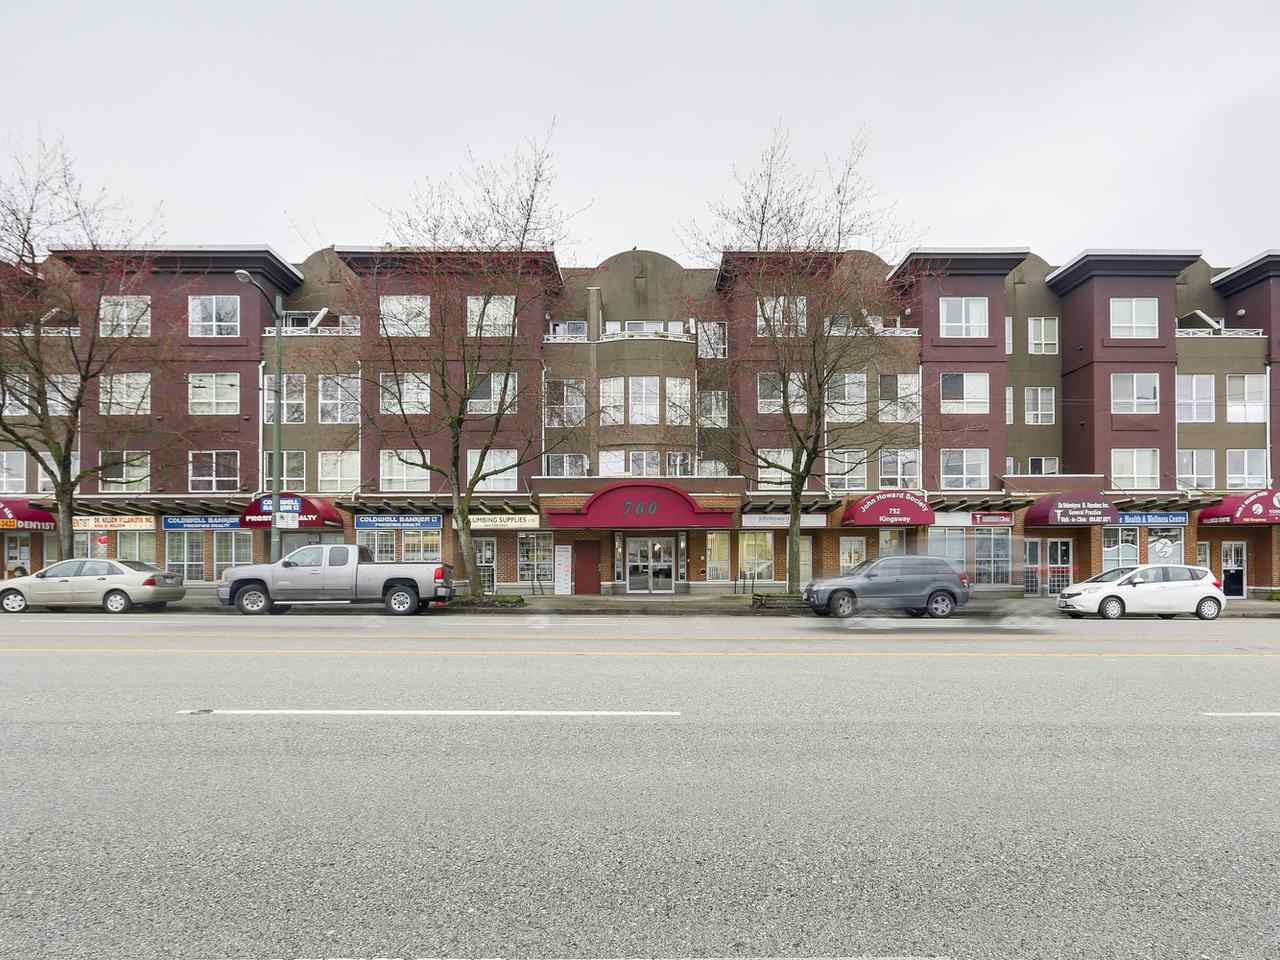 Main Photo: PH10 760 KINGSWAY in Vancouver: Fraser VE Condo for sale (Vancouver East)  : MLS®# R2148591